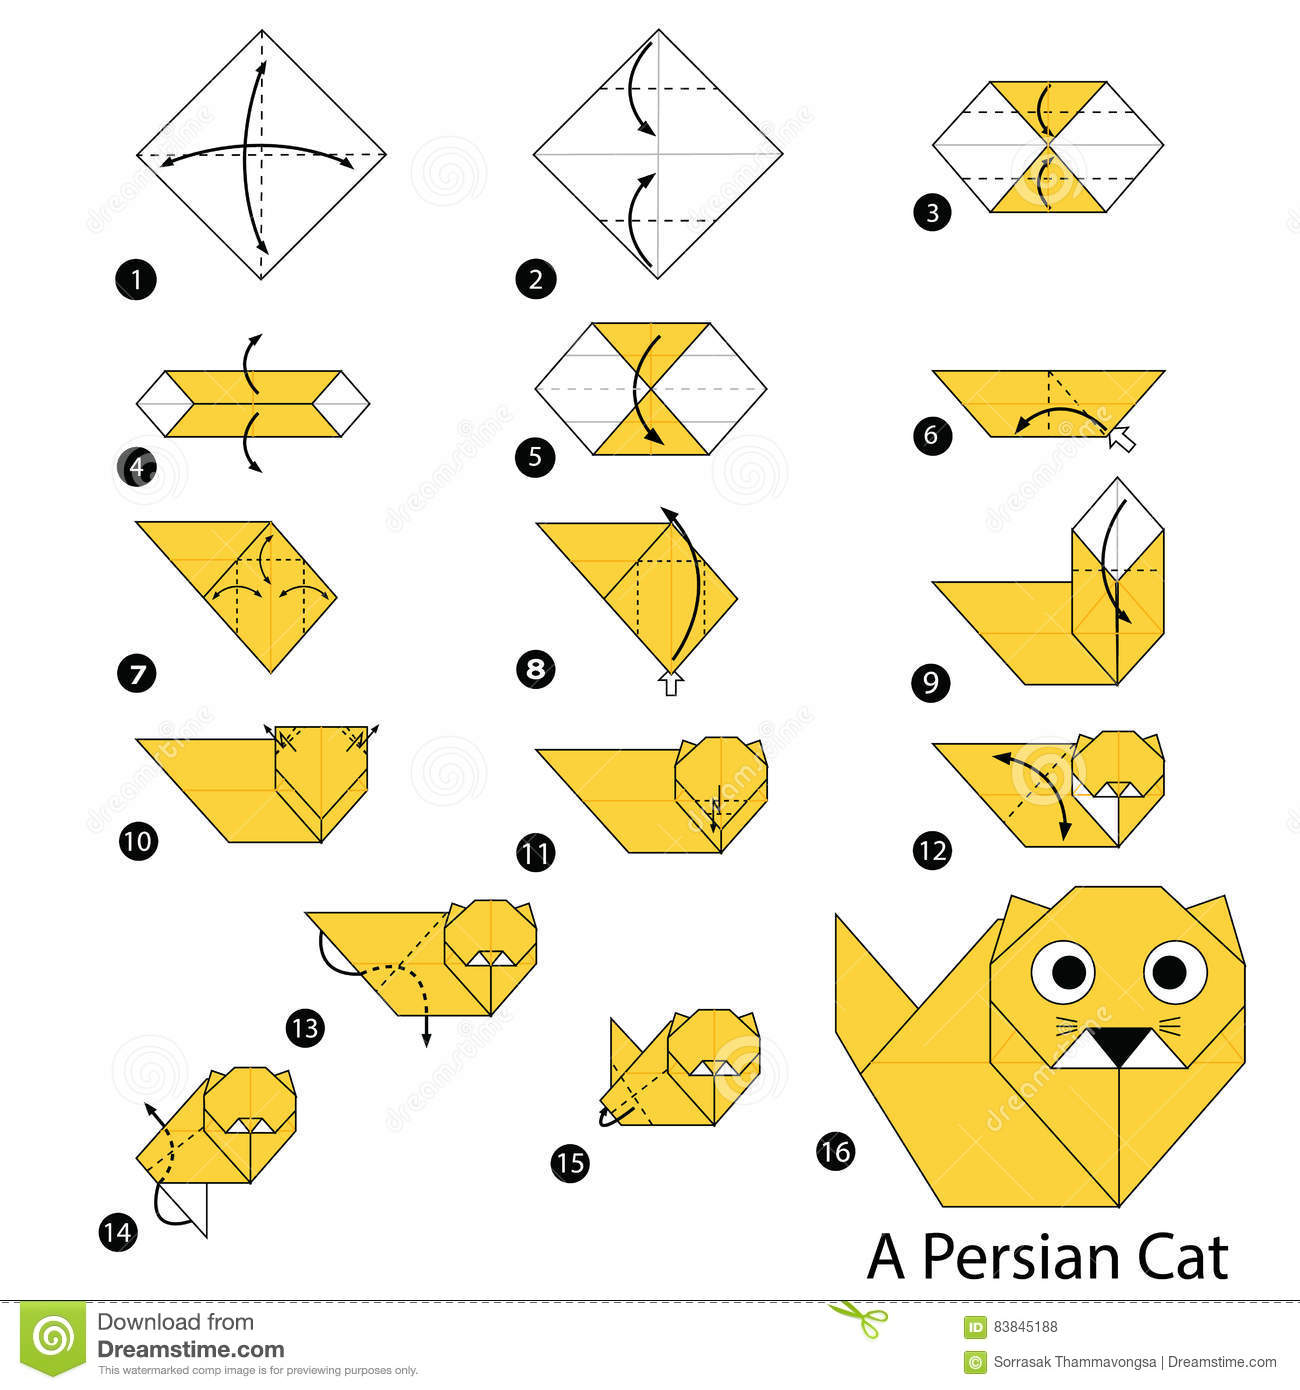 How to make Origami Cat | Easy Origami Cat Tutorial (2018) - YouTube | 1390x1300